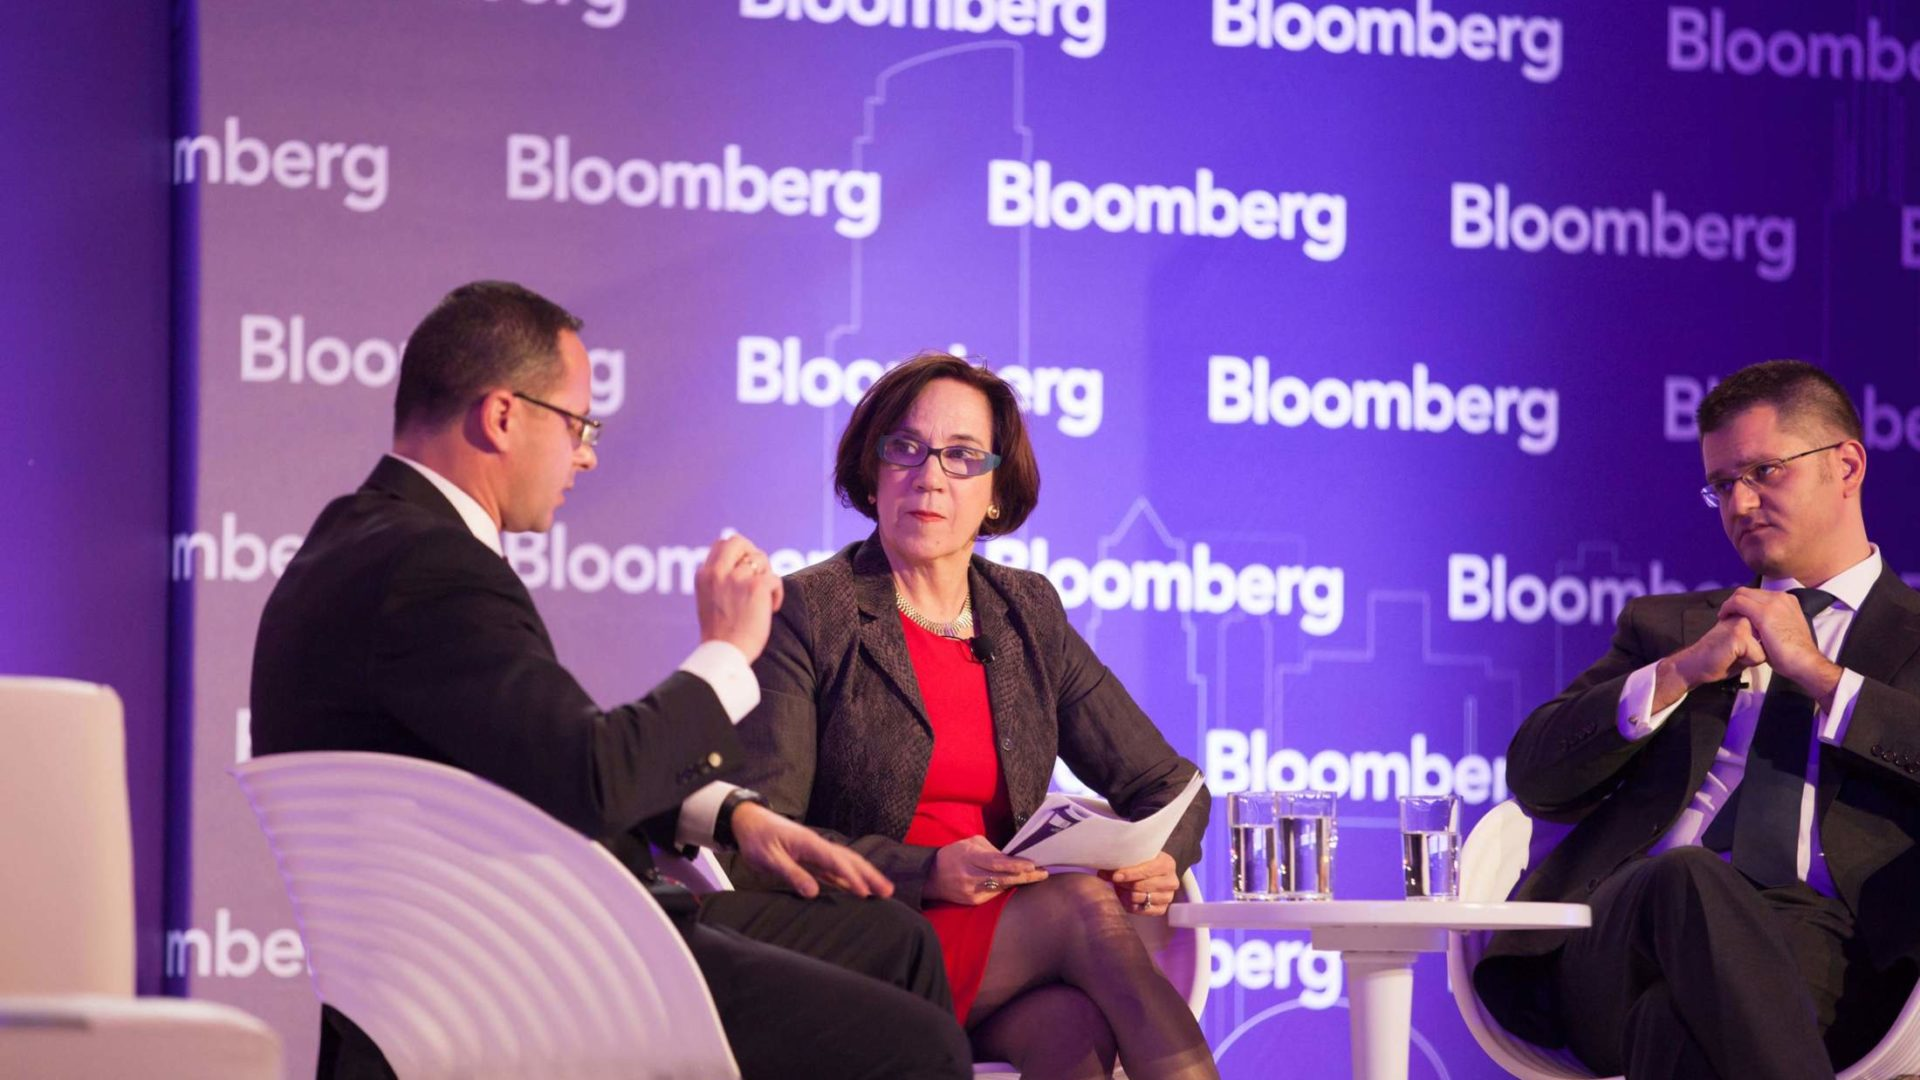 Bloomberg interviewer and guest